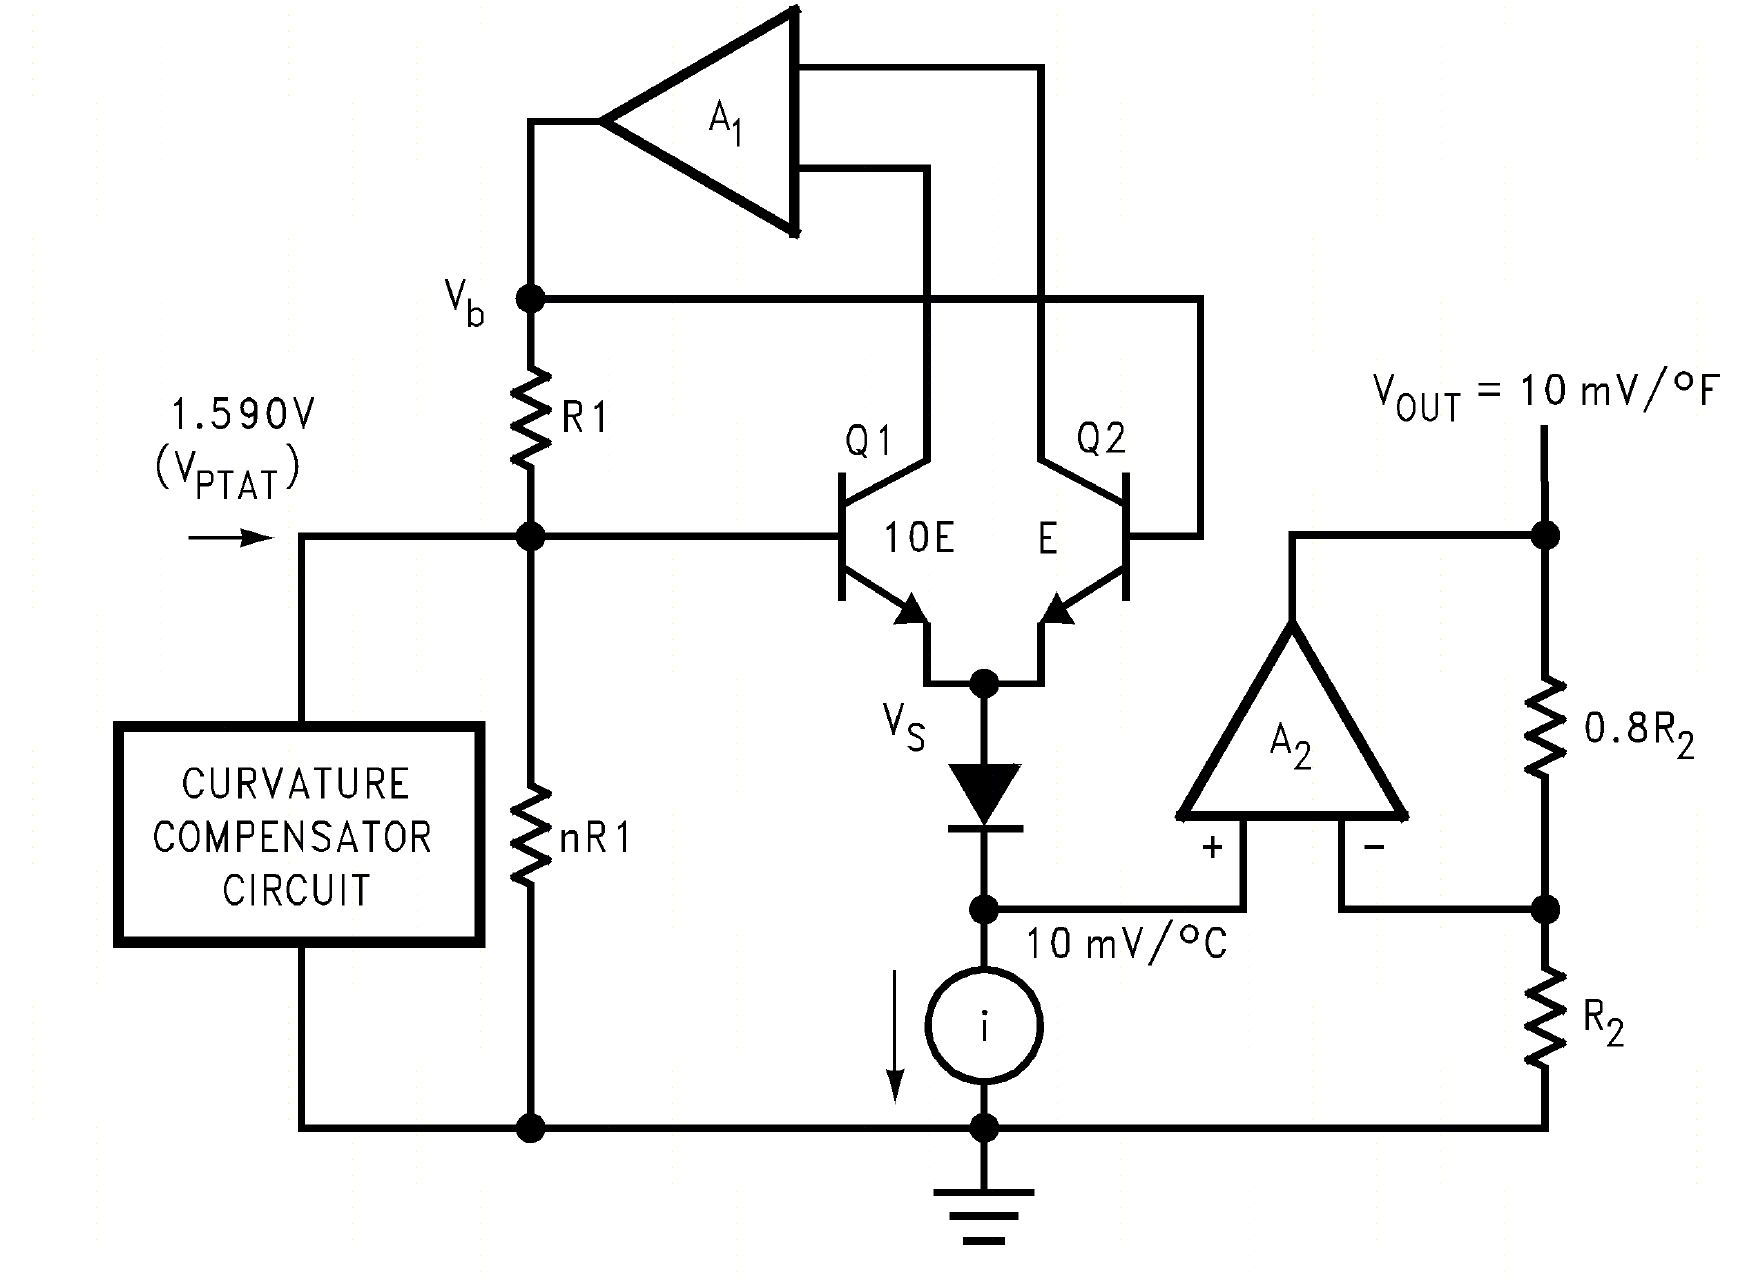 hight resolution of explanation regarding this circuit i wish to understand the schematic